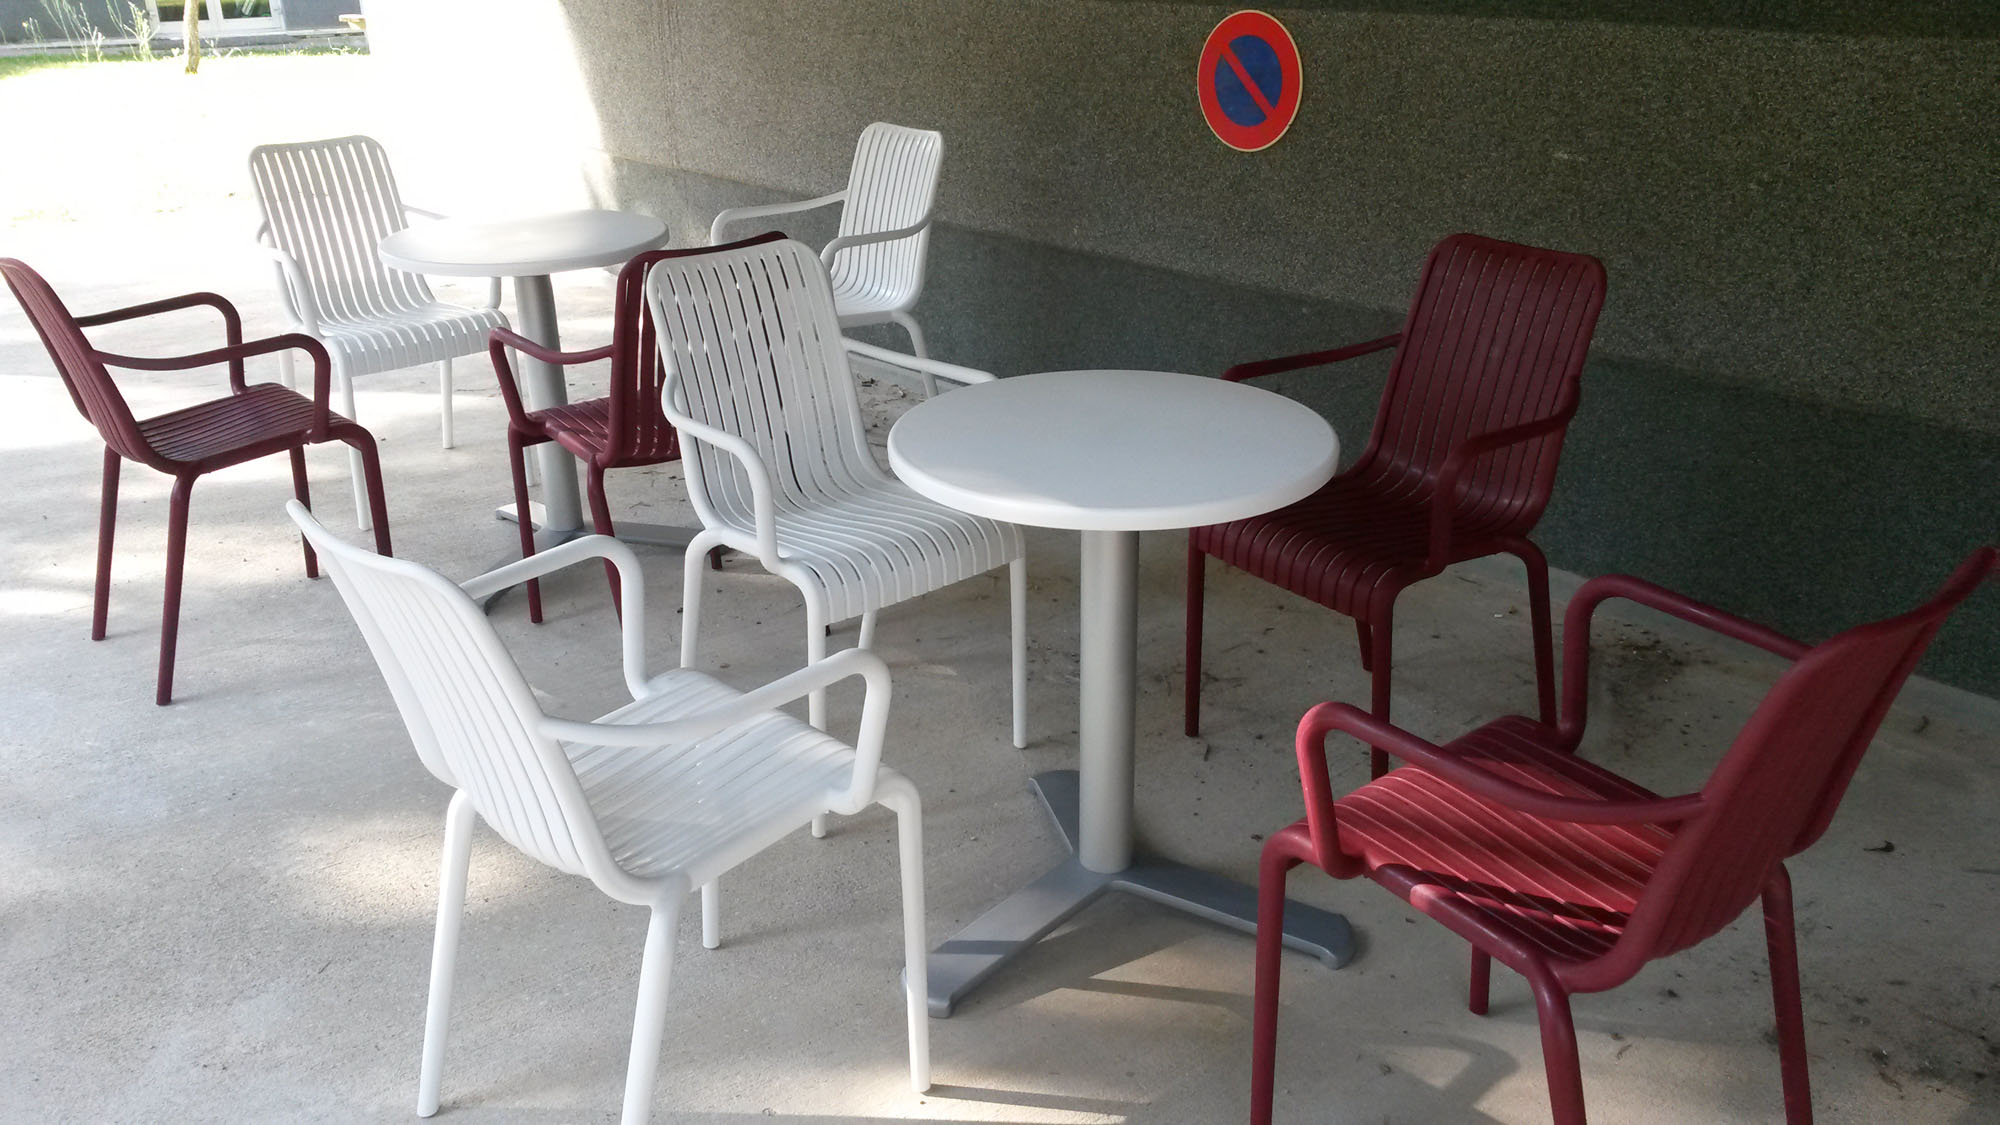 Location table et chaise montpellier great appartucity confort montpellier ovalie chaise et - Location table et chaises ...